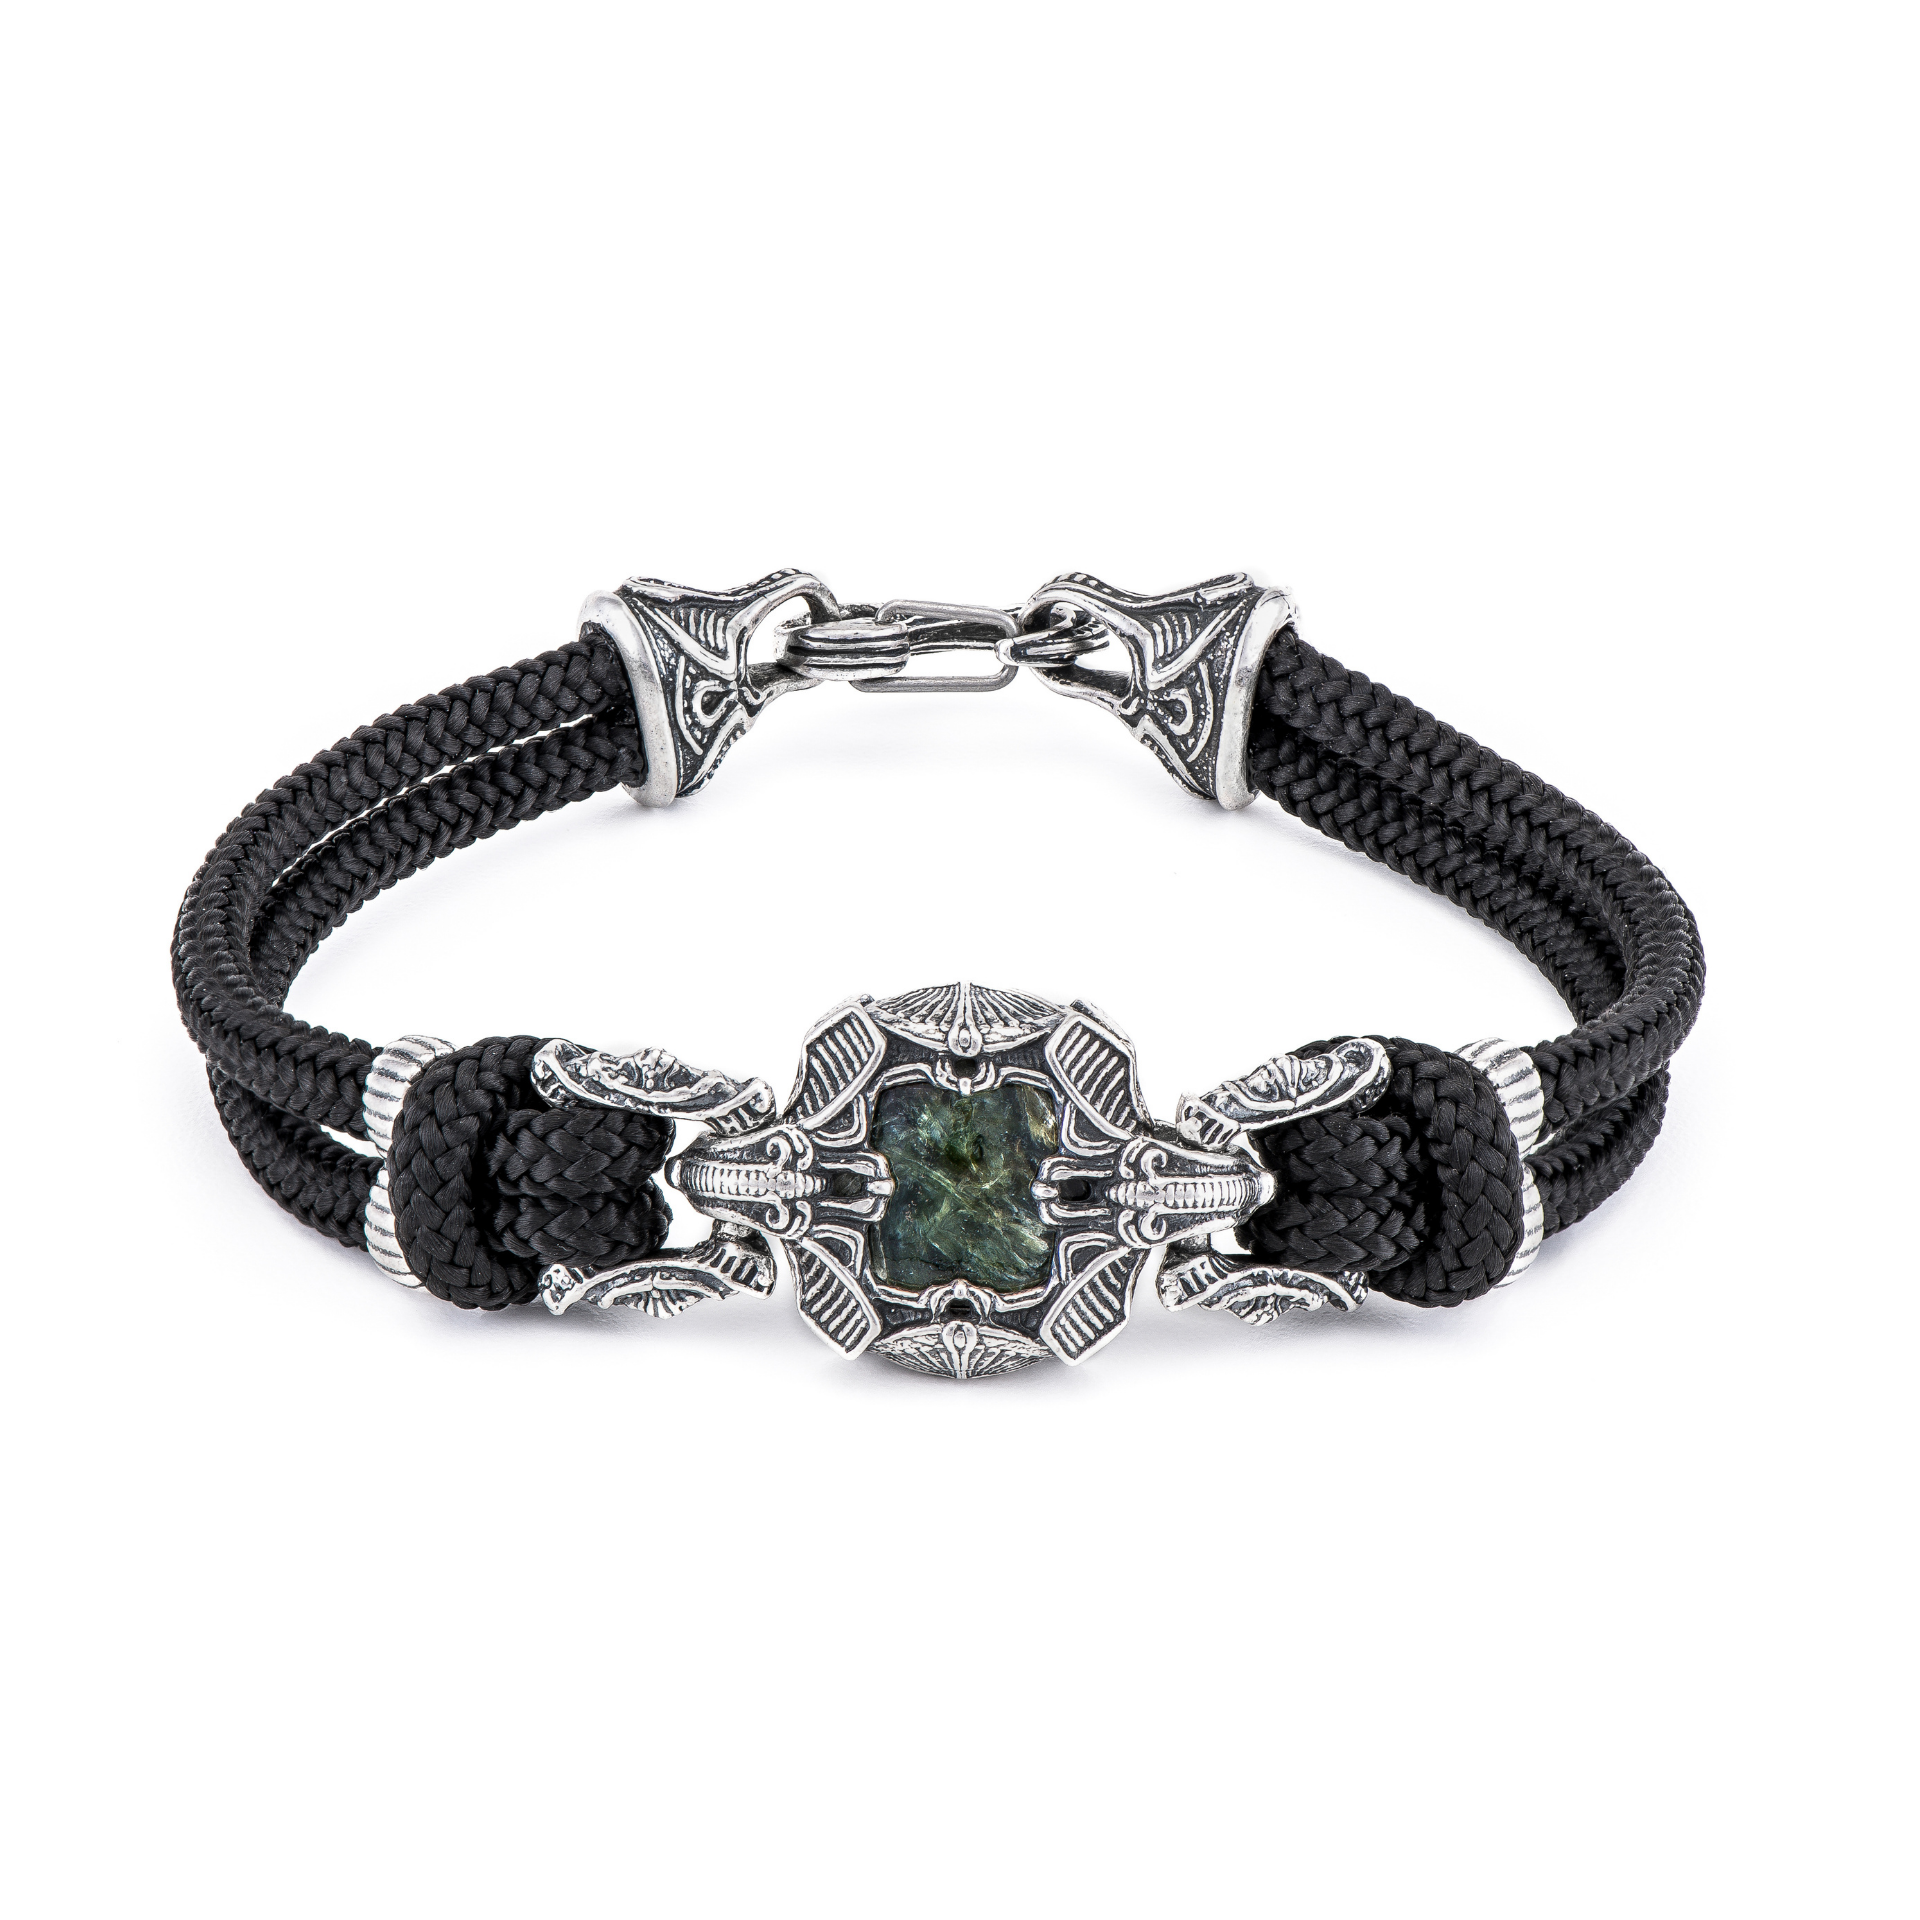 William Henry, Masculine, Bracelet, Sterling Silver, Para-Cord, Dinosaur Fossil, Green, Ottawa